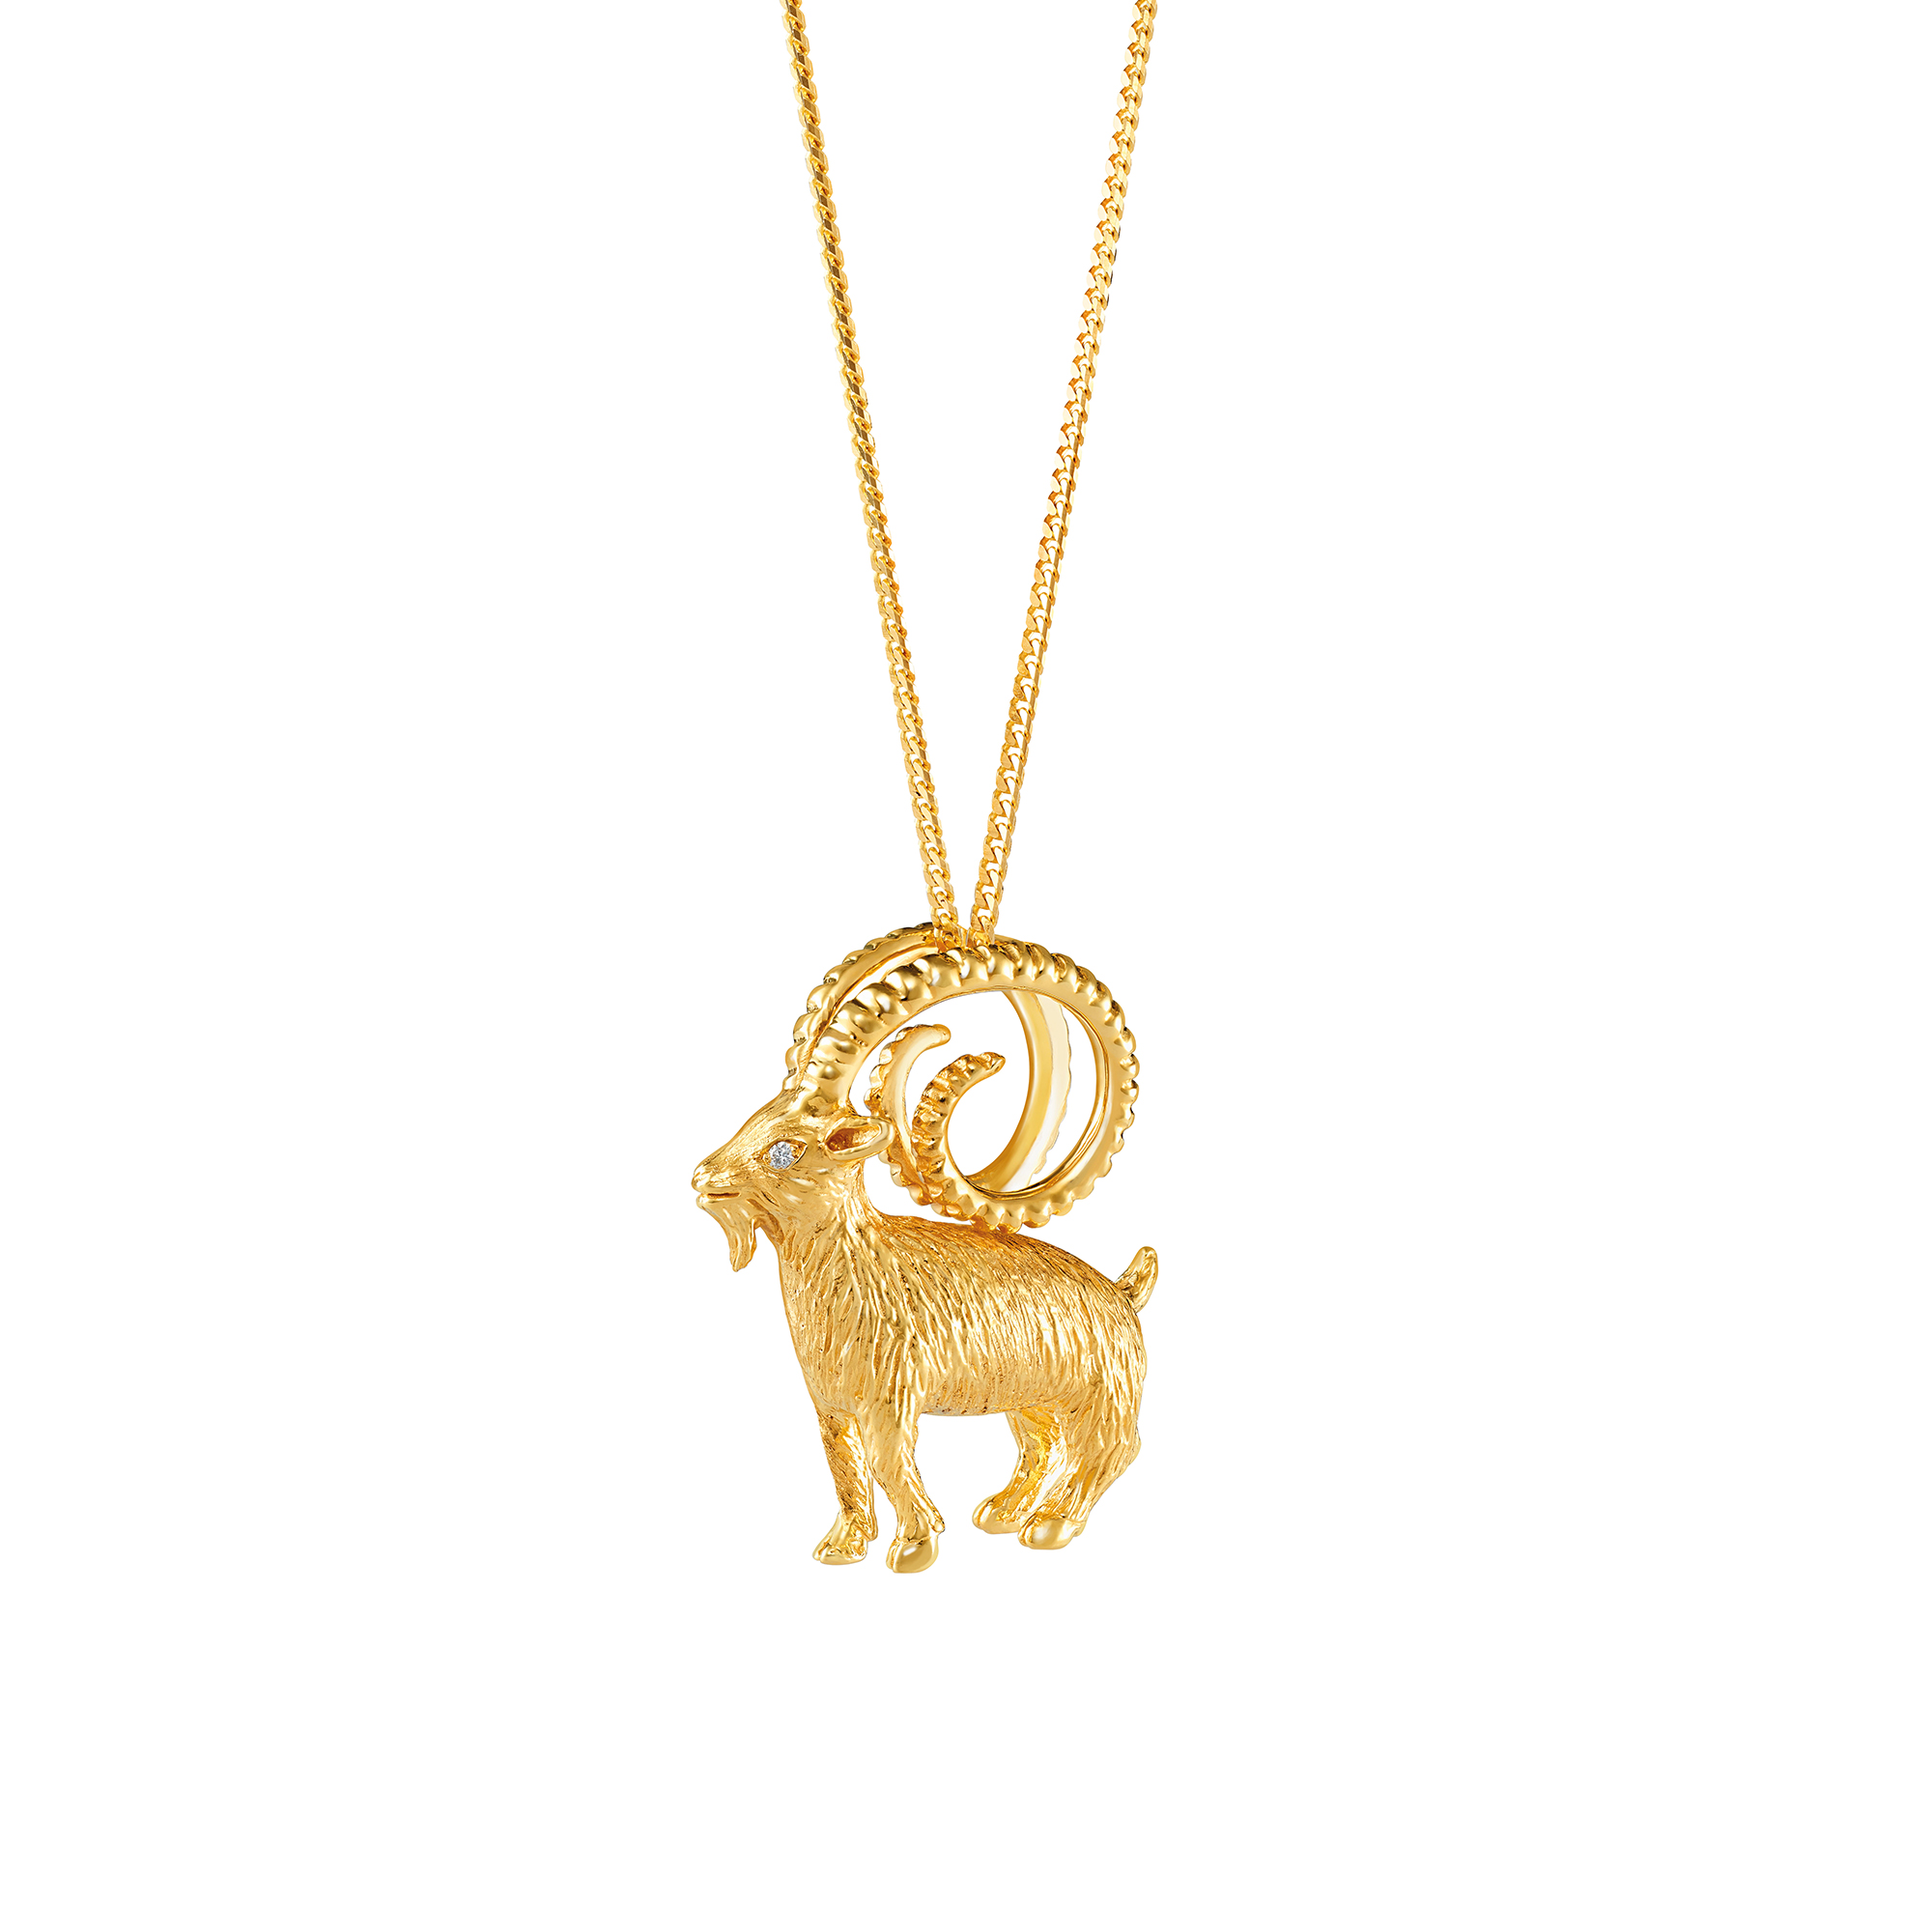 necklace pendant p head asp goat